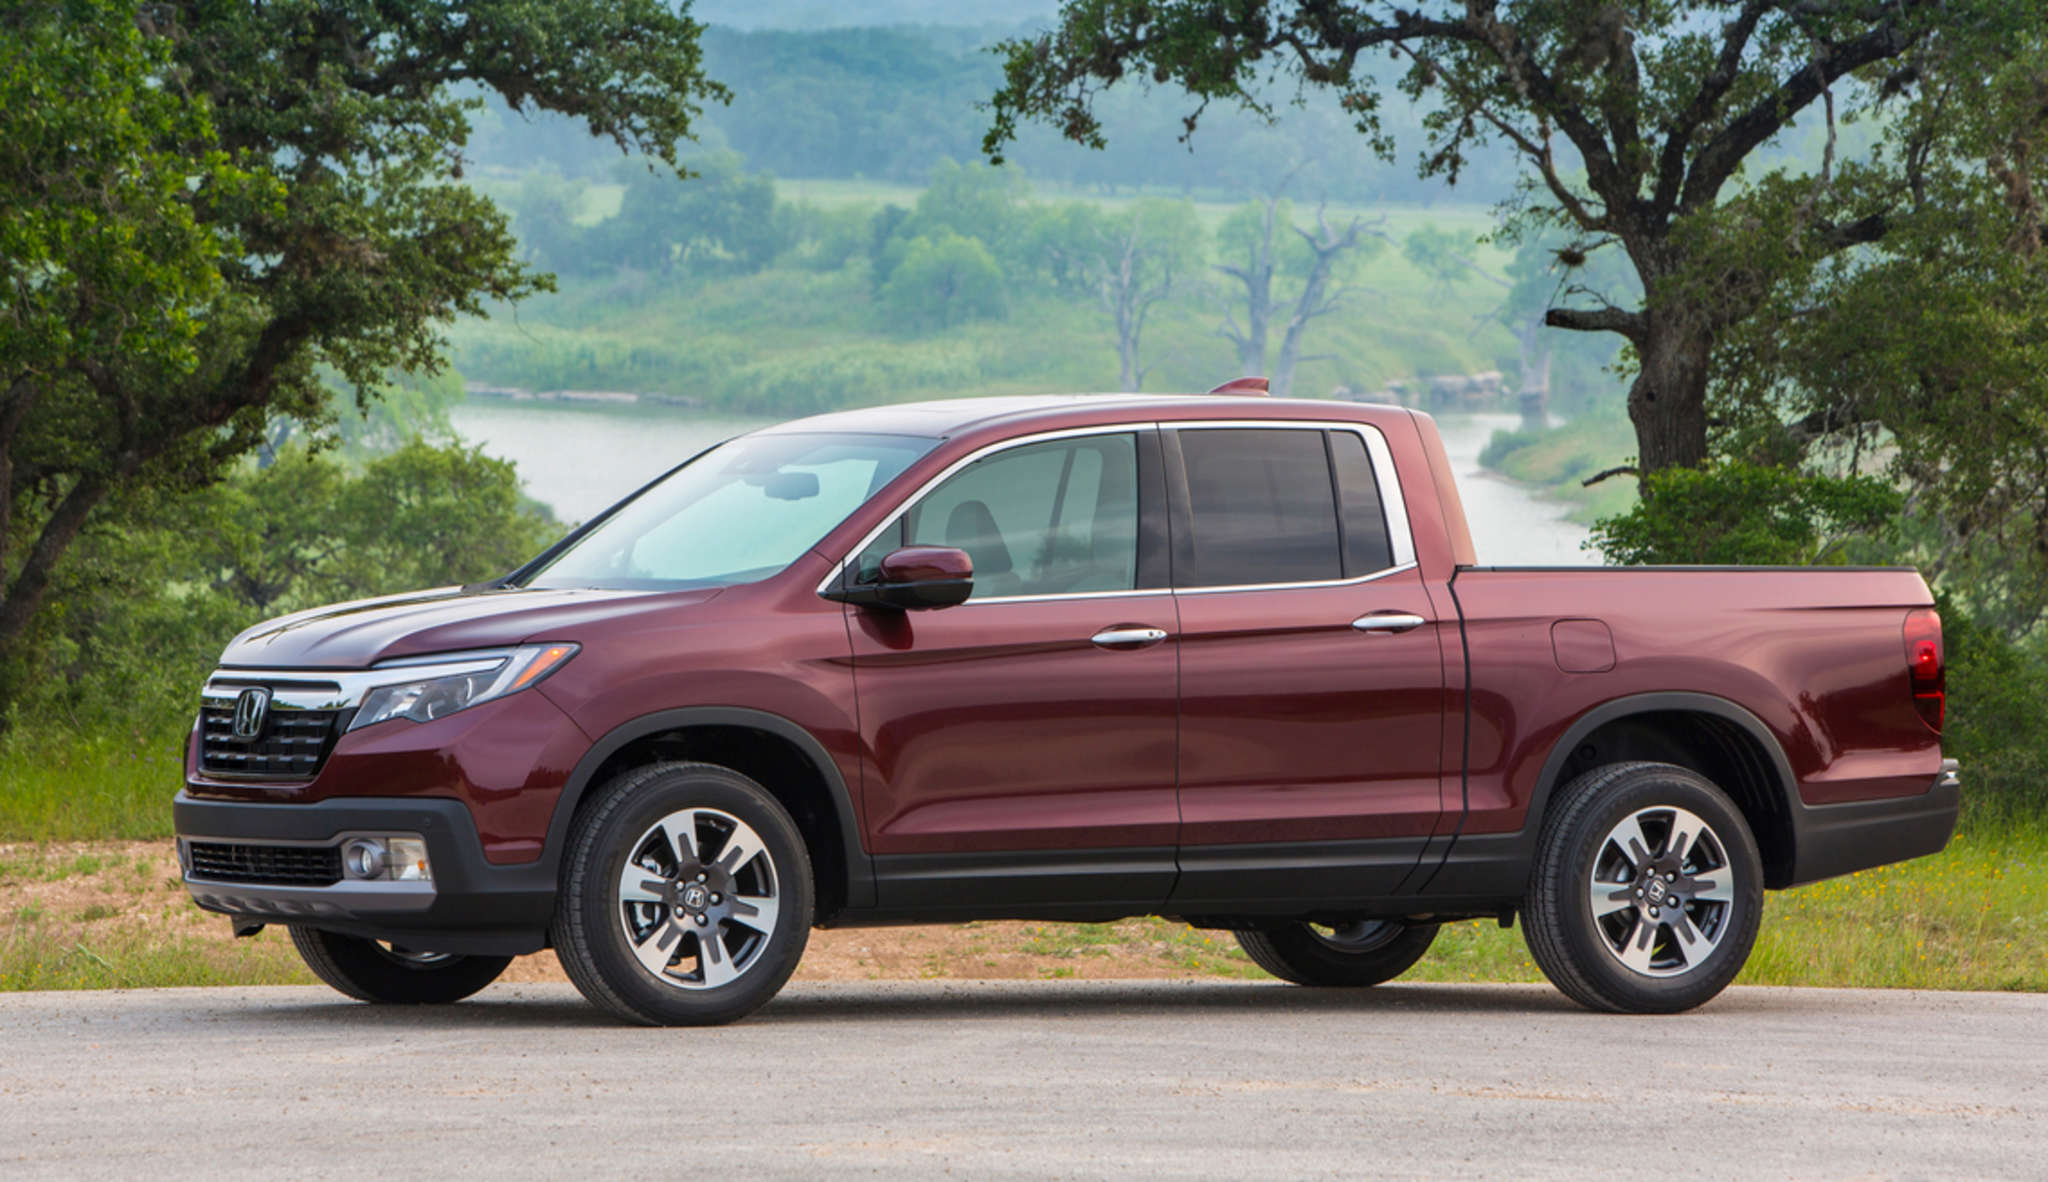 The 2017 Honda Ridgeline, back after a three-year hiatus, combines comfort, ride, and fuel economy.